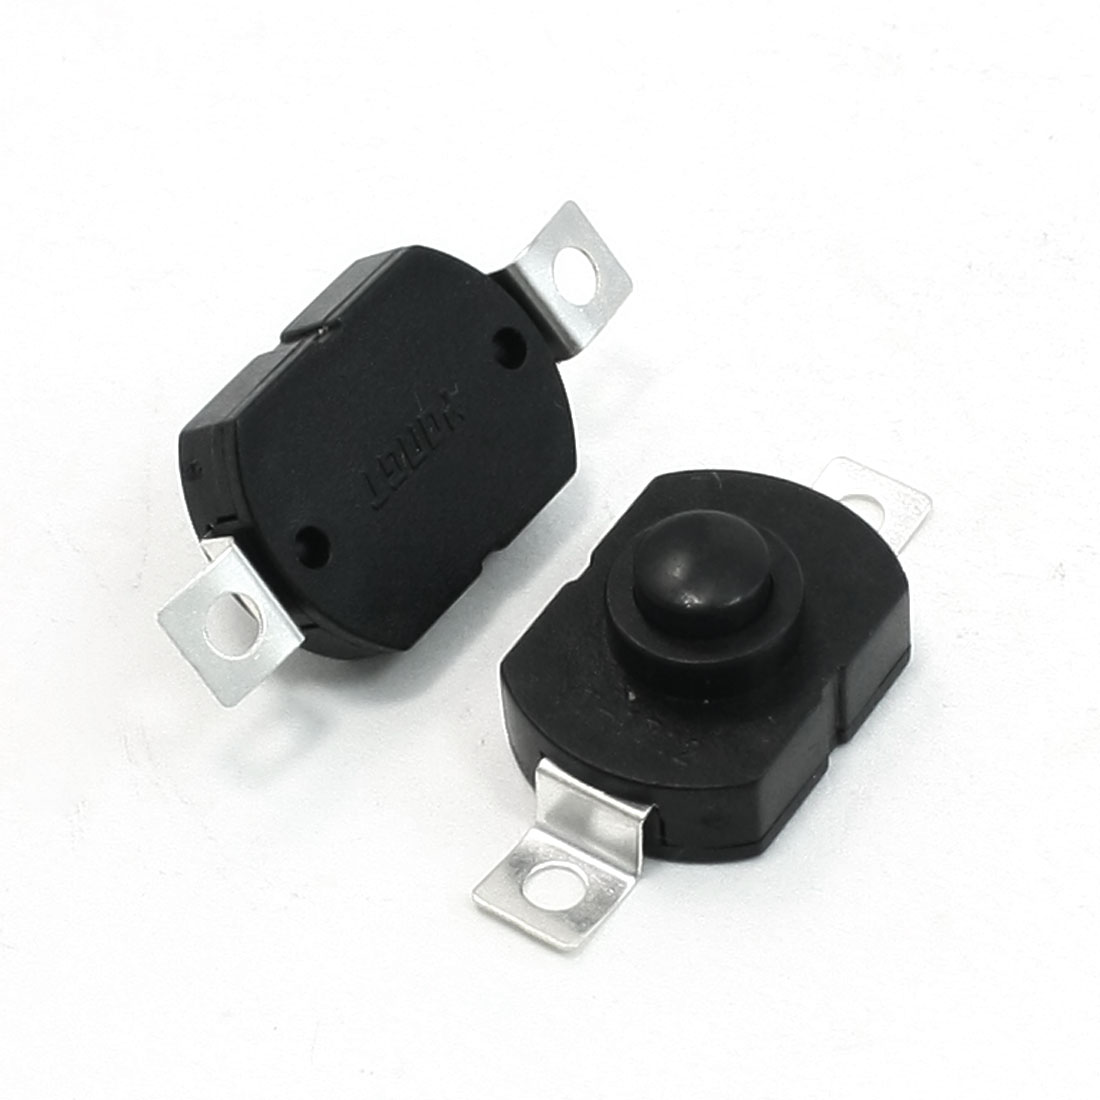 2 Pcs Latching ON/OFF Push Button Switch AC 250V 1.5A for Electric Torch